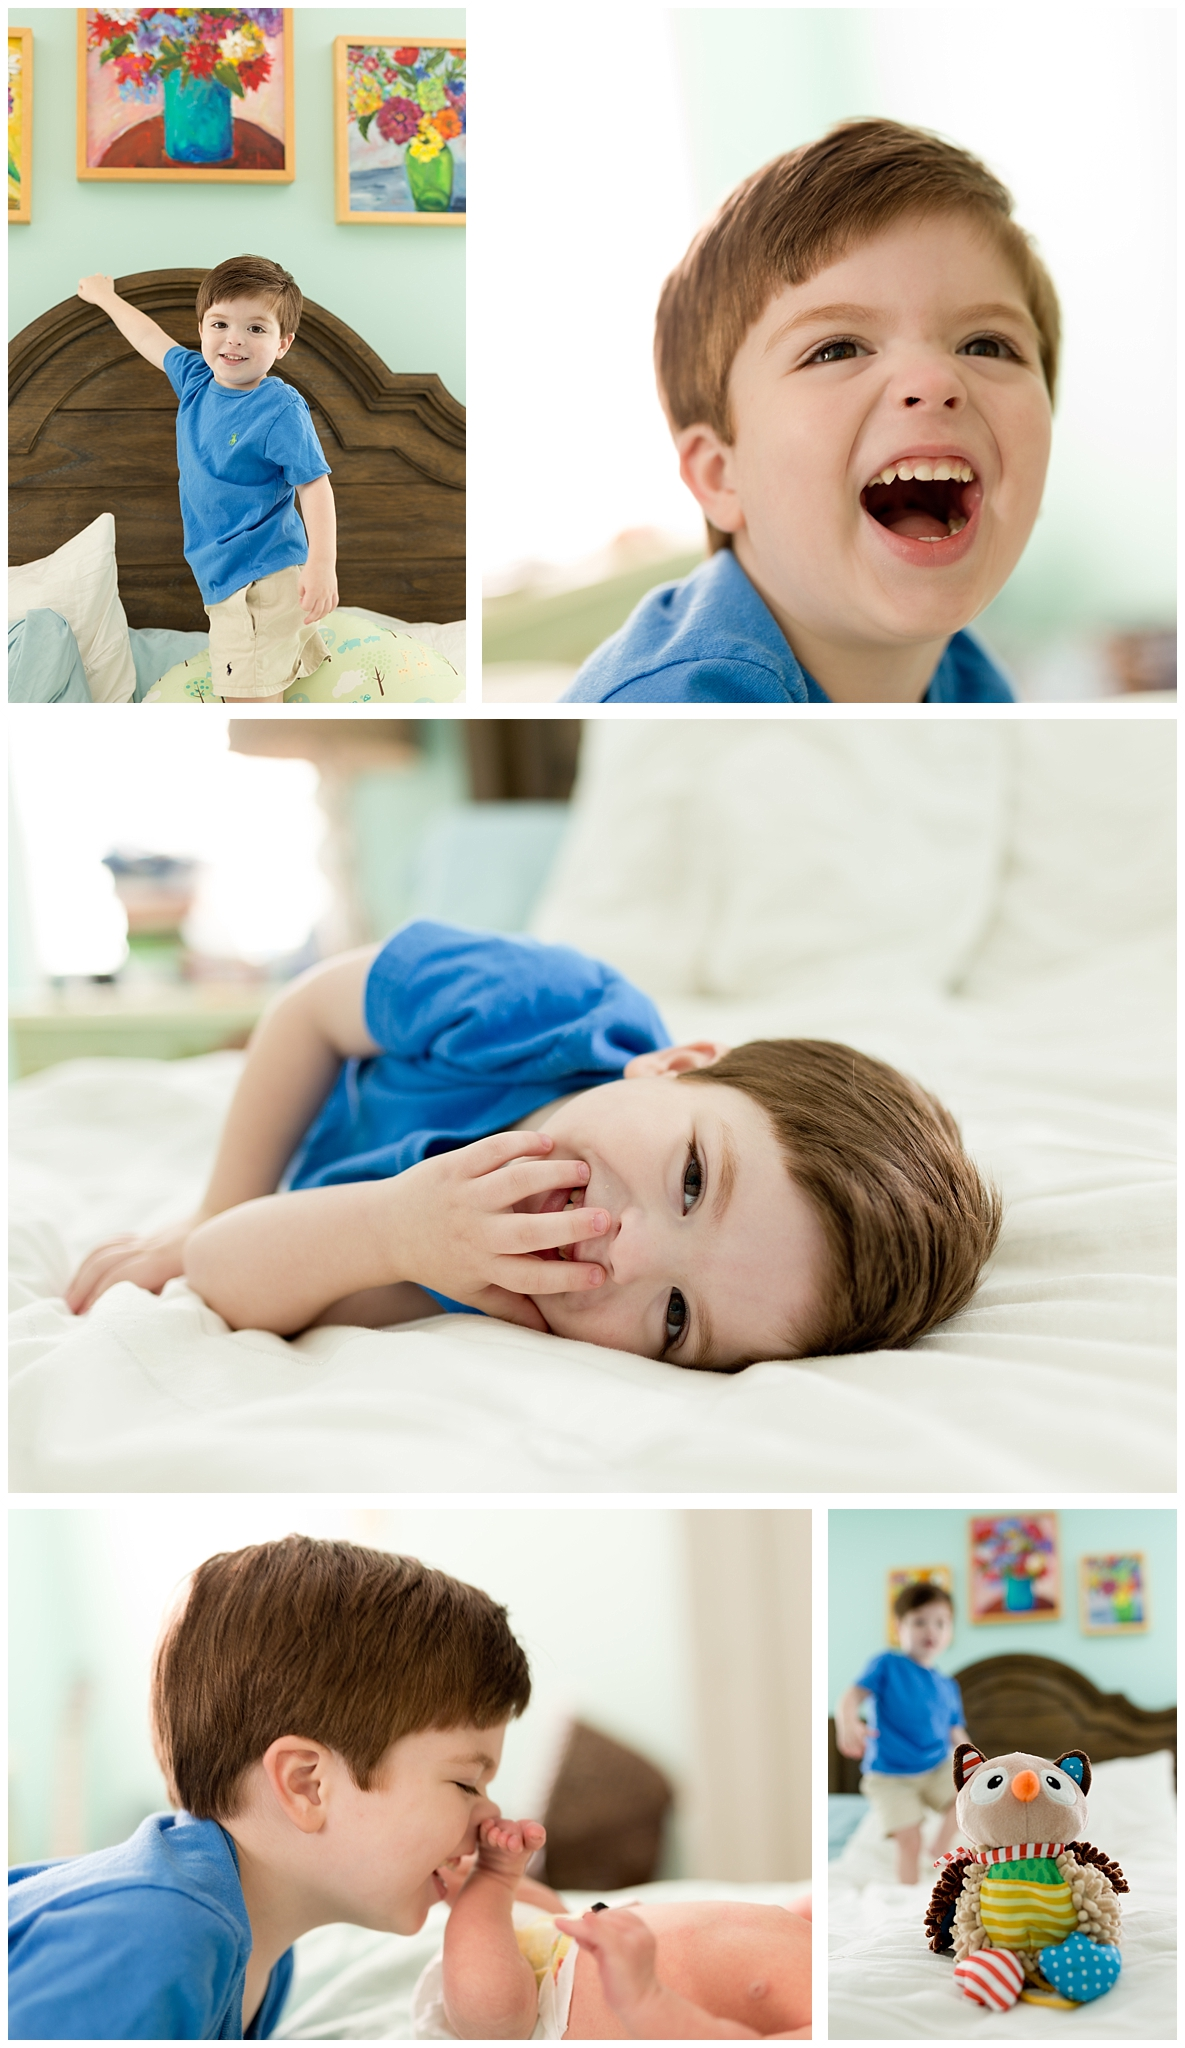 joyful toddler boy playing in bedroom (lifestyle family photography)